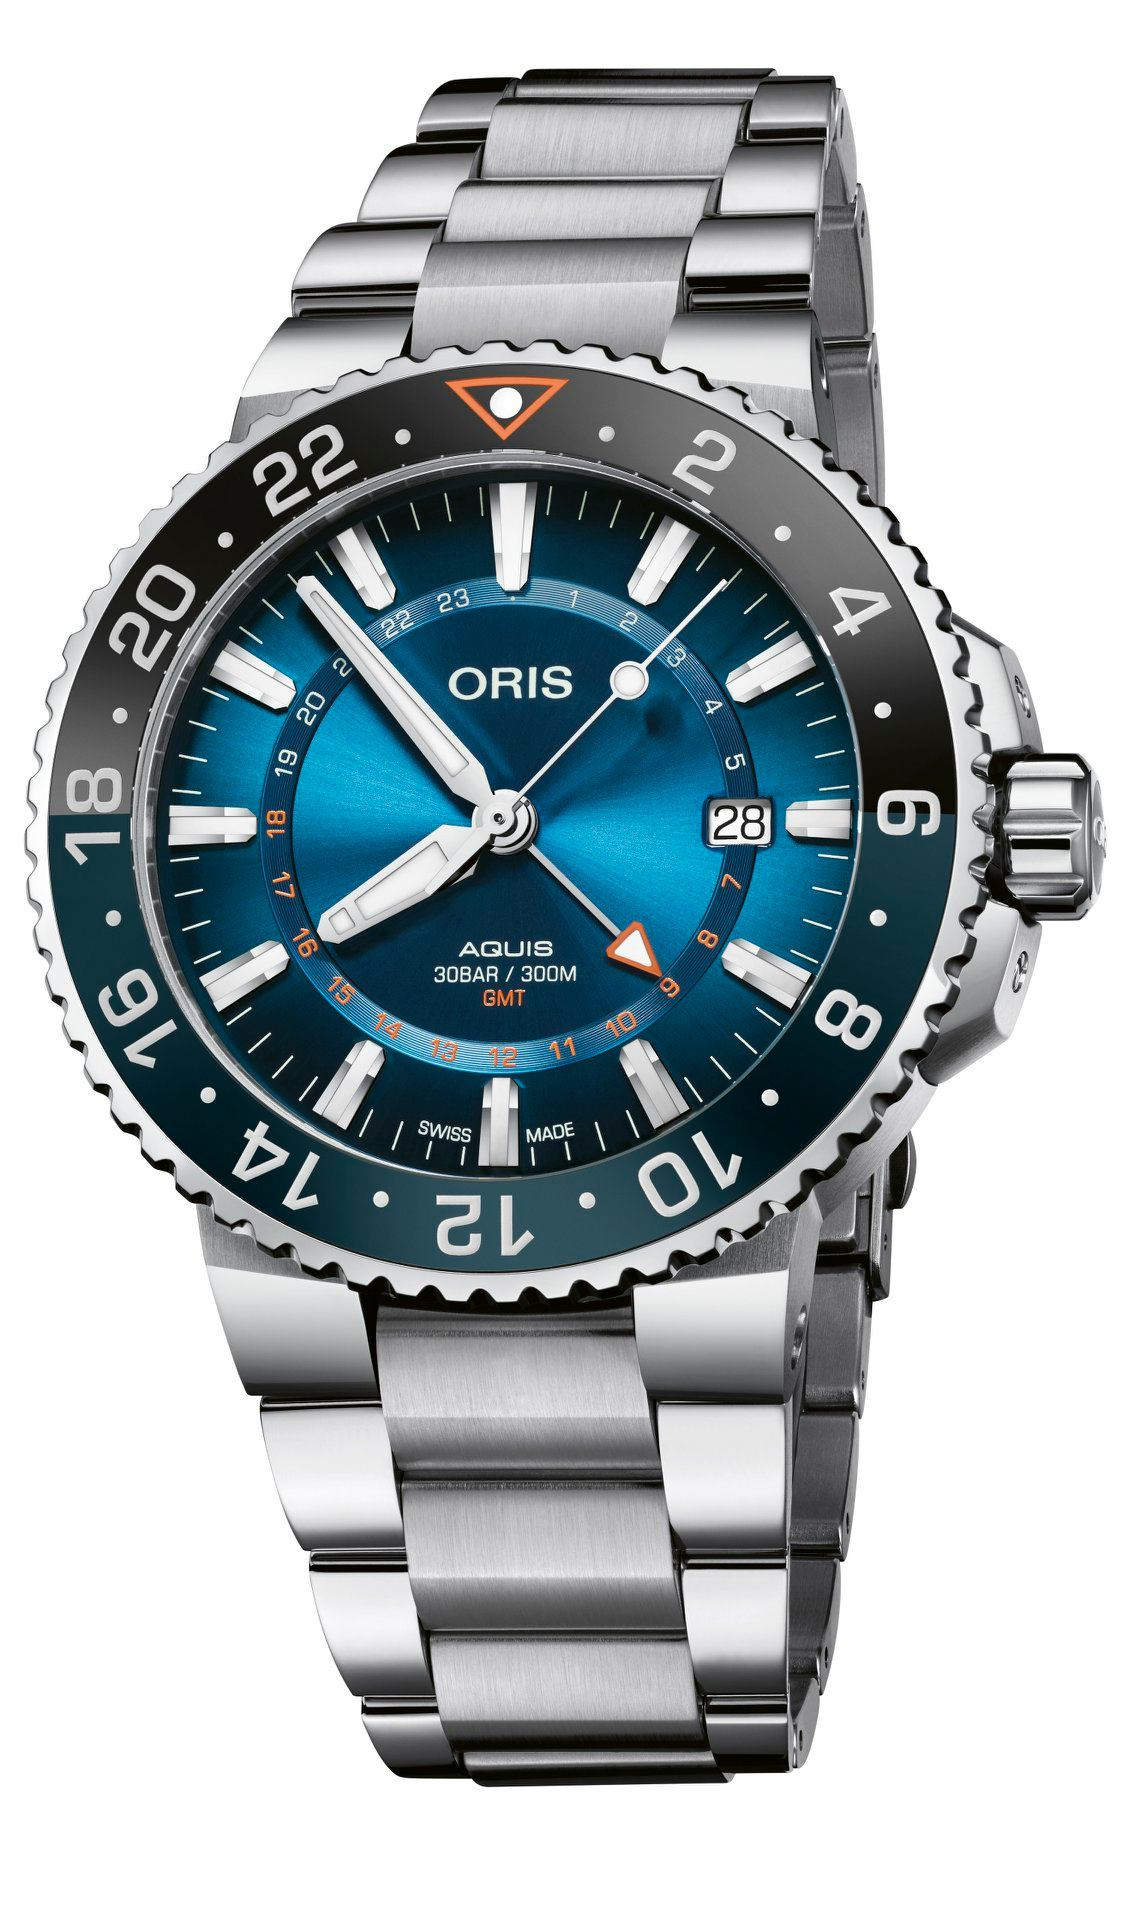 Oris Aquis Carysfort Reef Limited Edition-